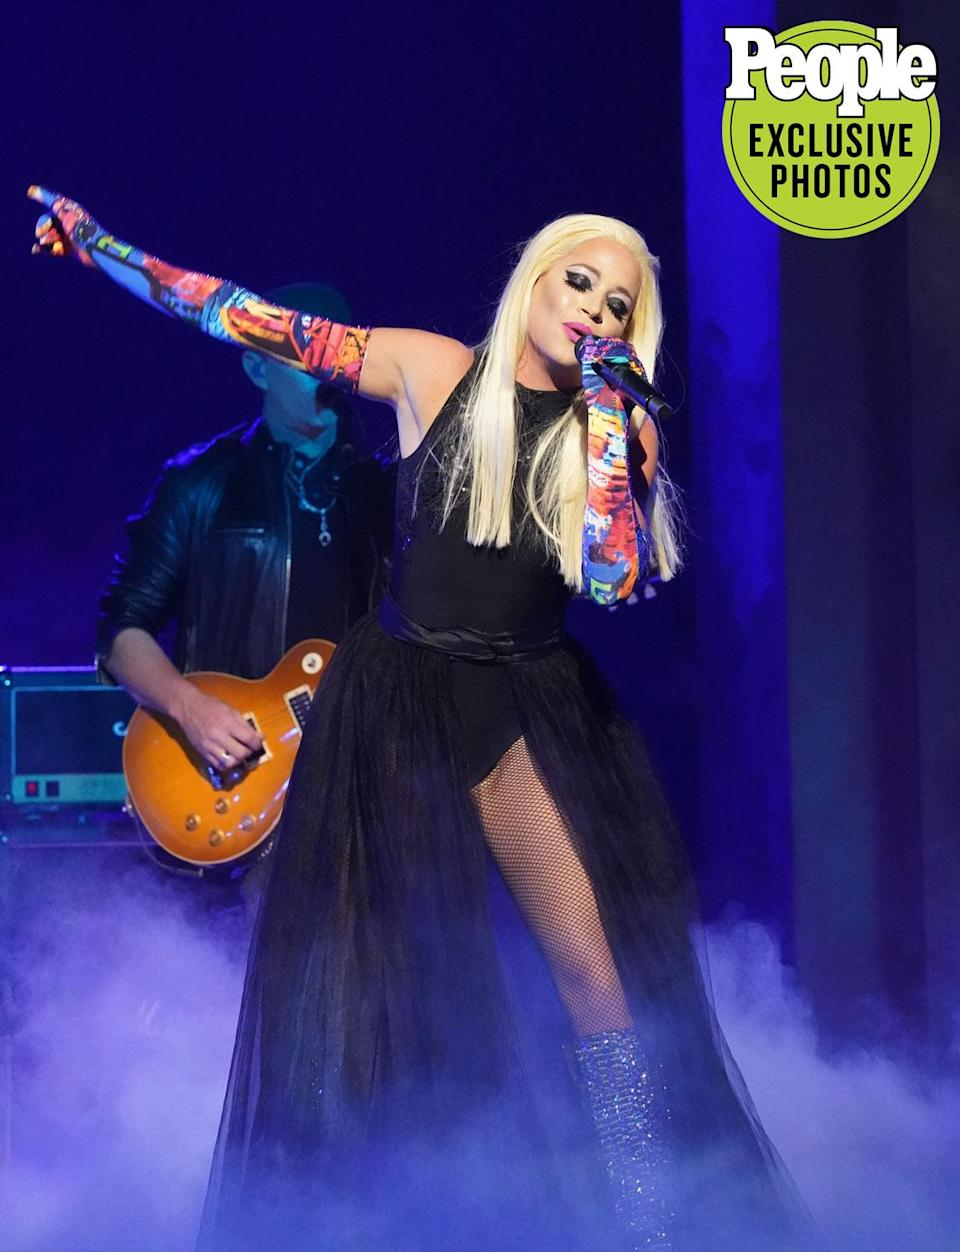 """<p>With more than 60 million views on YouTube and over 5000 shows performed, Erika Moul has earned her title of """"the best of the best"""" in the tribute world. Utilizing her BFA in theater, she stormed the big stage, starring in multiple shows in Las Vegas at only 21 years old.</p> <p>As an artistic producer and performer, she became the opening act for STYX's Dennis DeYoung, Luciana, Erika Jayne, and even Charlie Daniels at the National Finals Rodeo. Moul is known for her versatile sound and is reminiscent of artists such as Lady Gaga, Melissa Etheridge, Stevie Nicks and Carrie Underwood with her powerful vocals, vulnerable choices and unapologetic stage presence.</p>"""